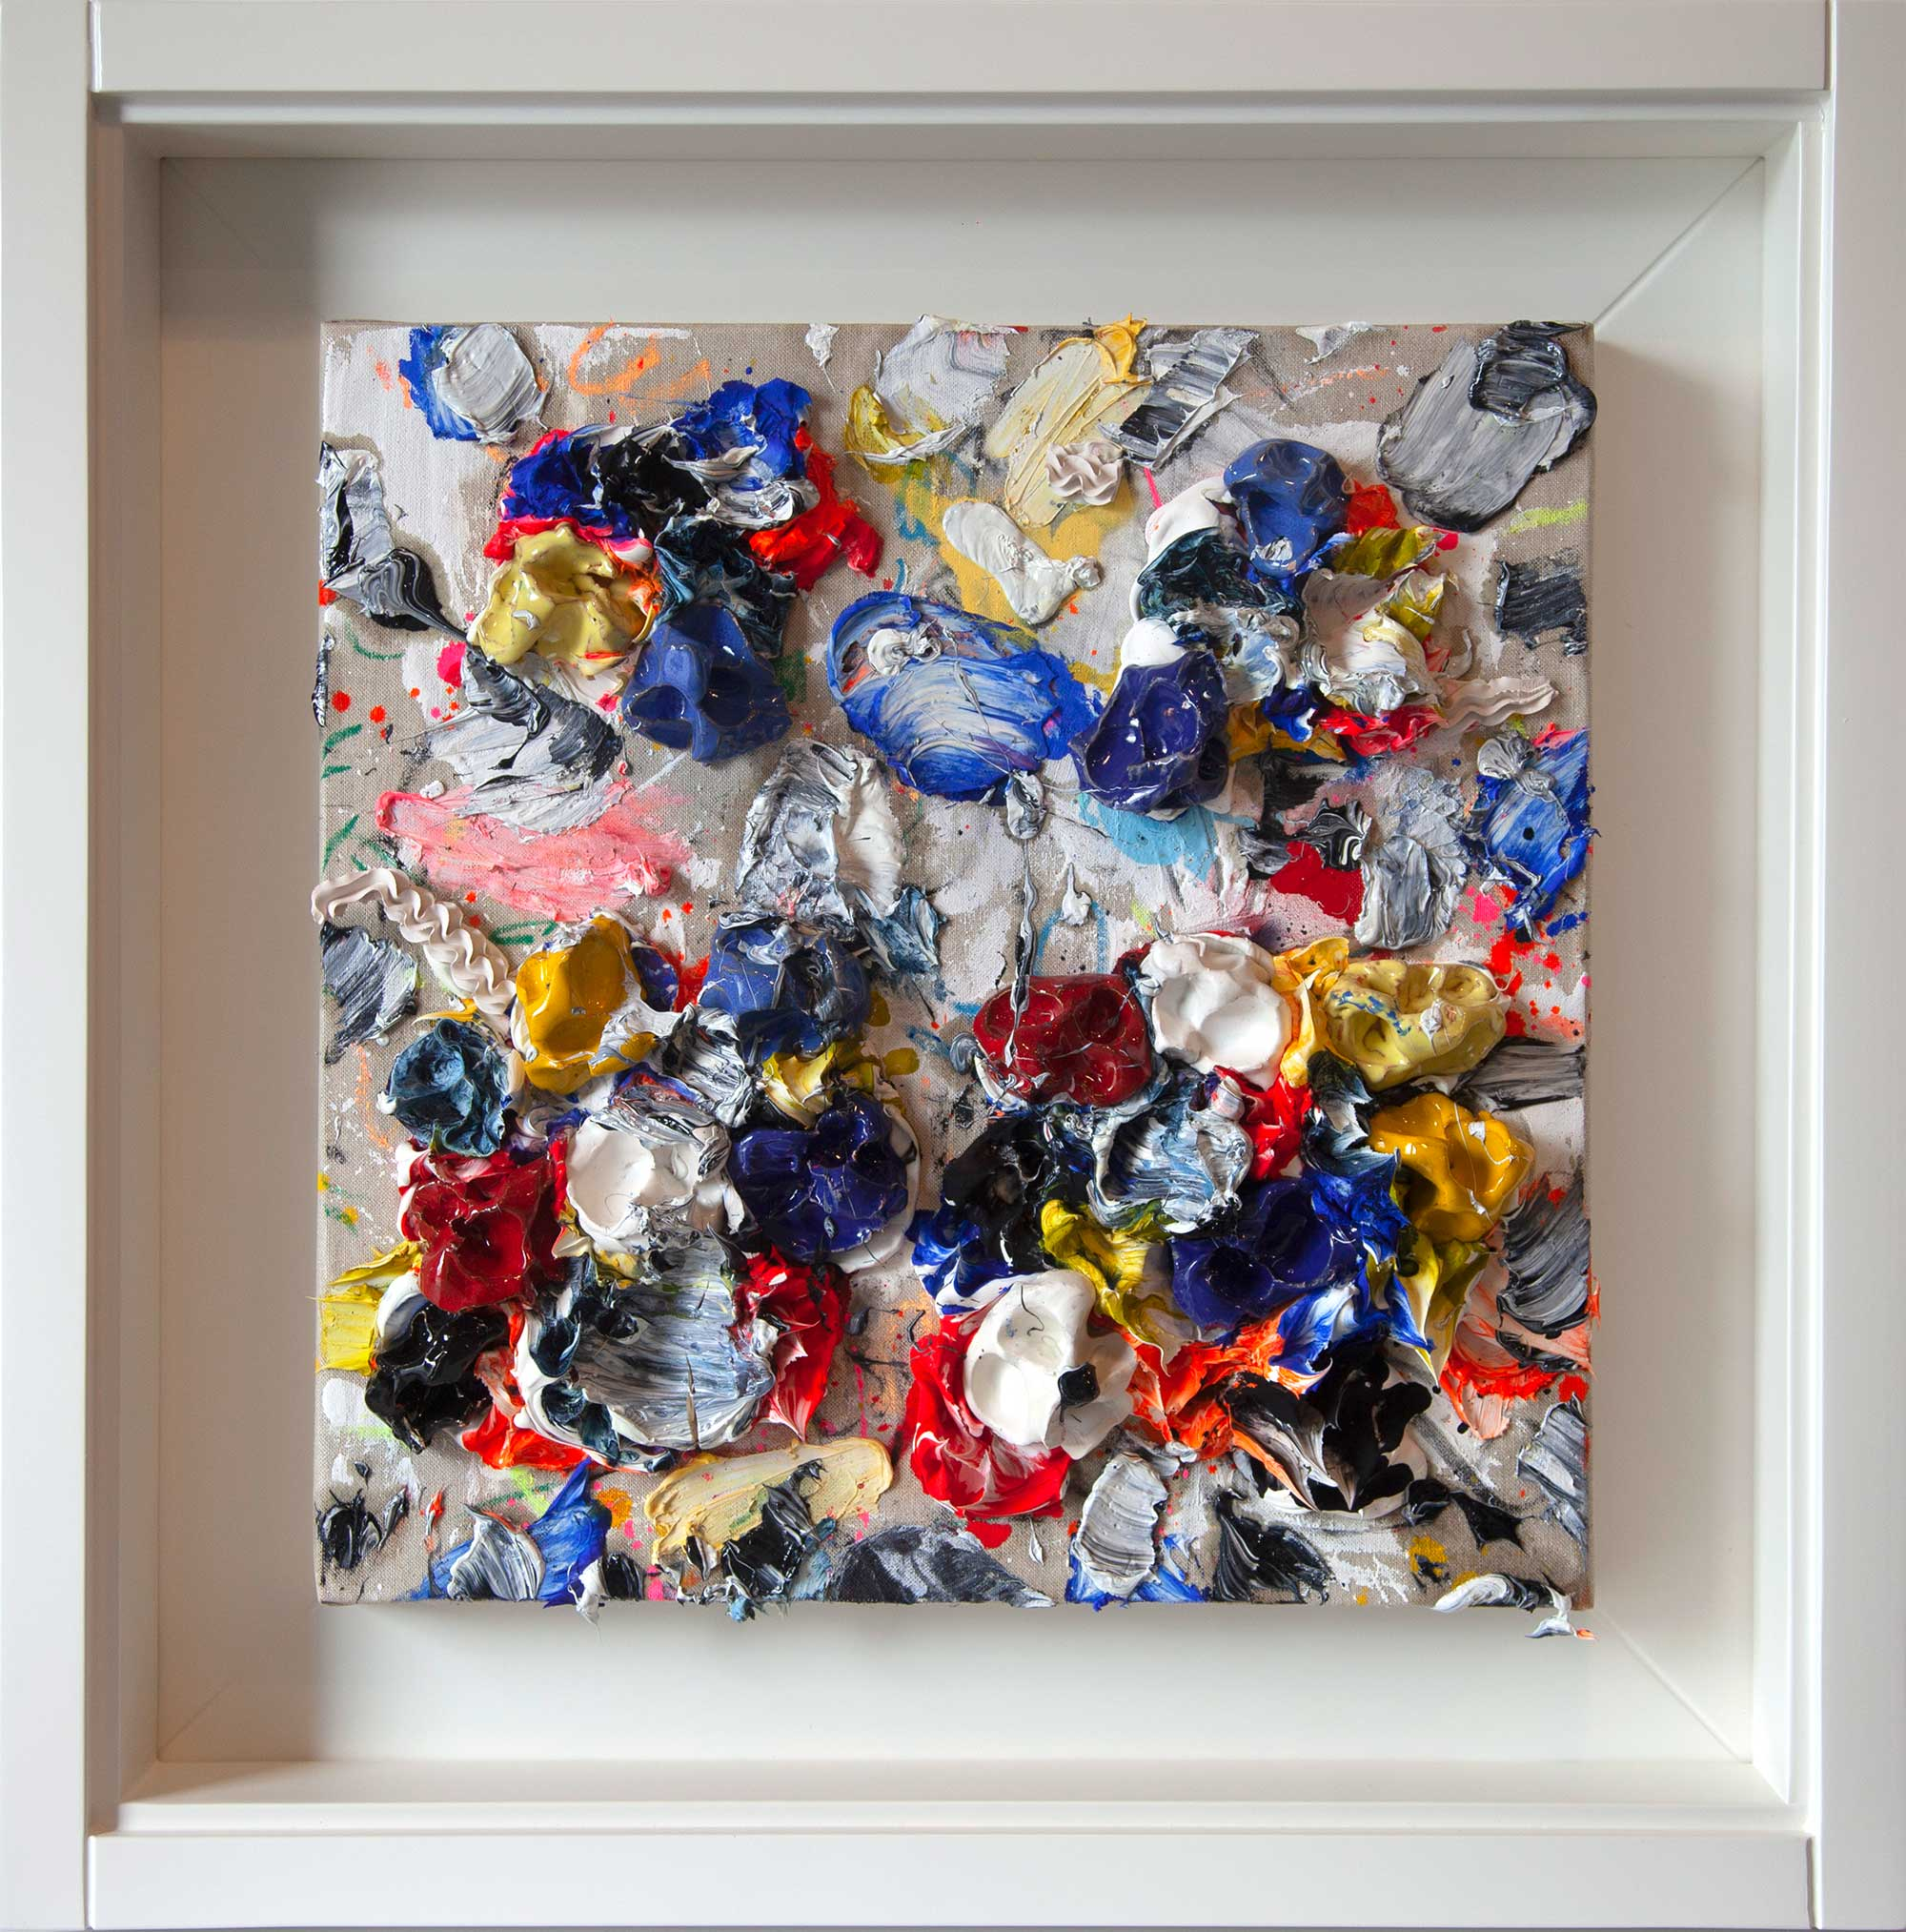 RED-WHITE-I- Mixte 70x70cm / 27,5x27,5 inches